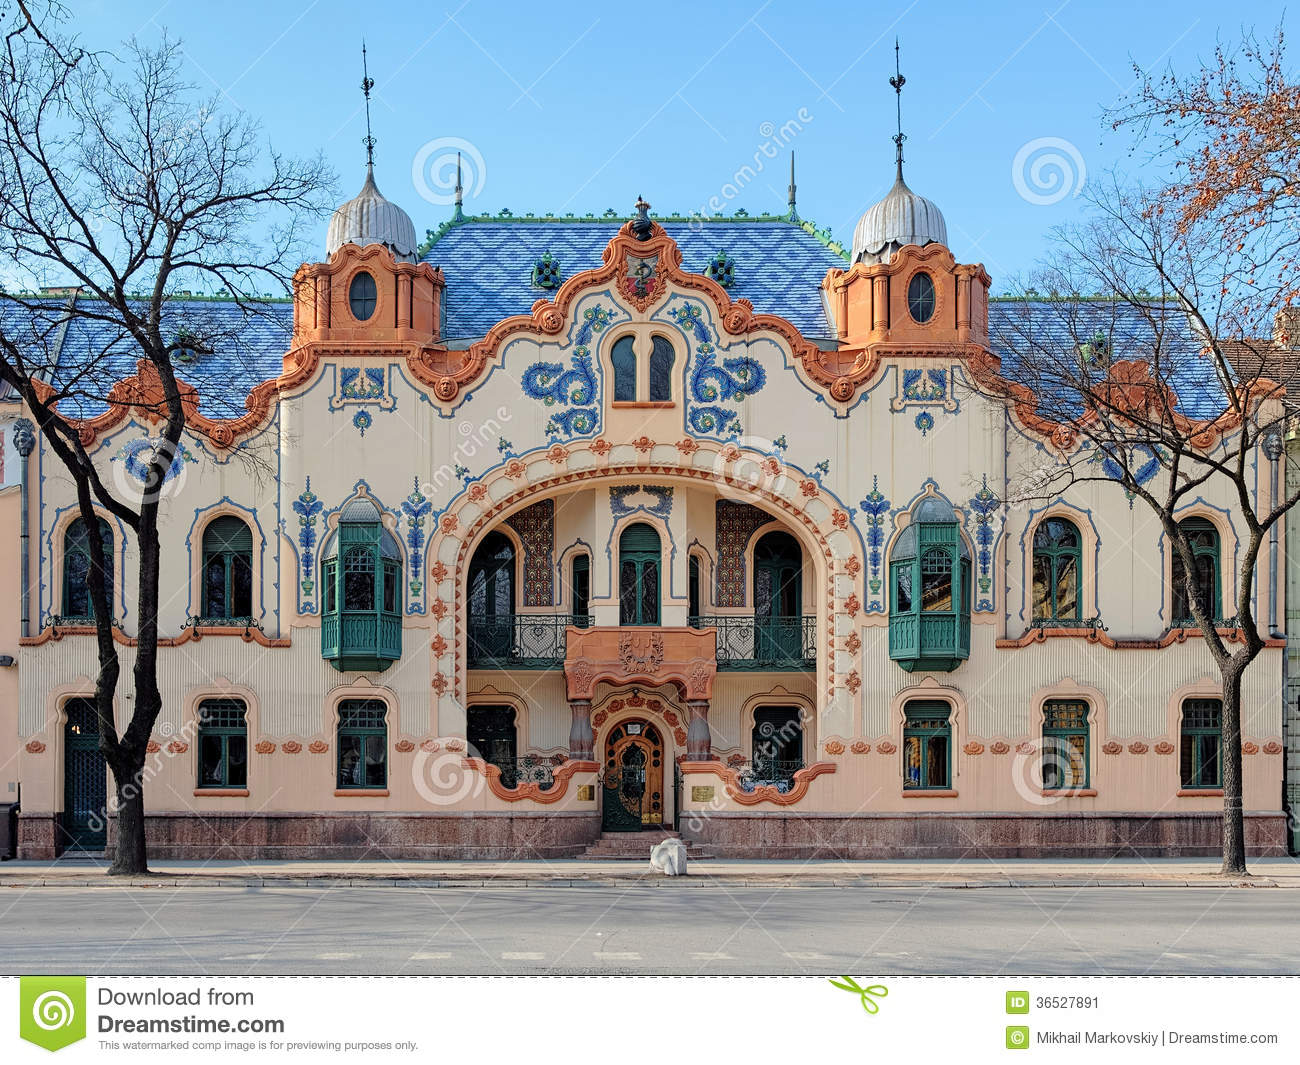 House Of rchitect Ferenc aichle In Subotica, Serbia Stock Image ... - ^